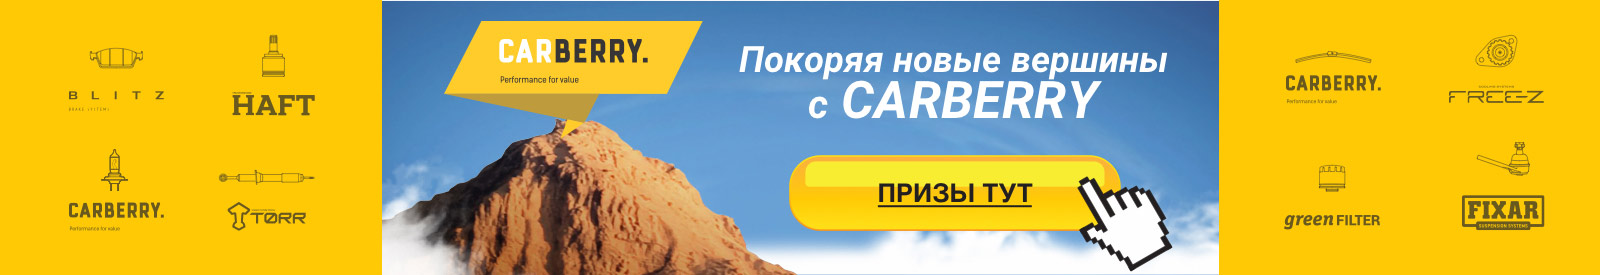 АКЦИЯ CARBERRY